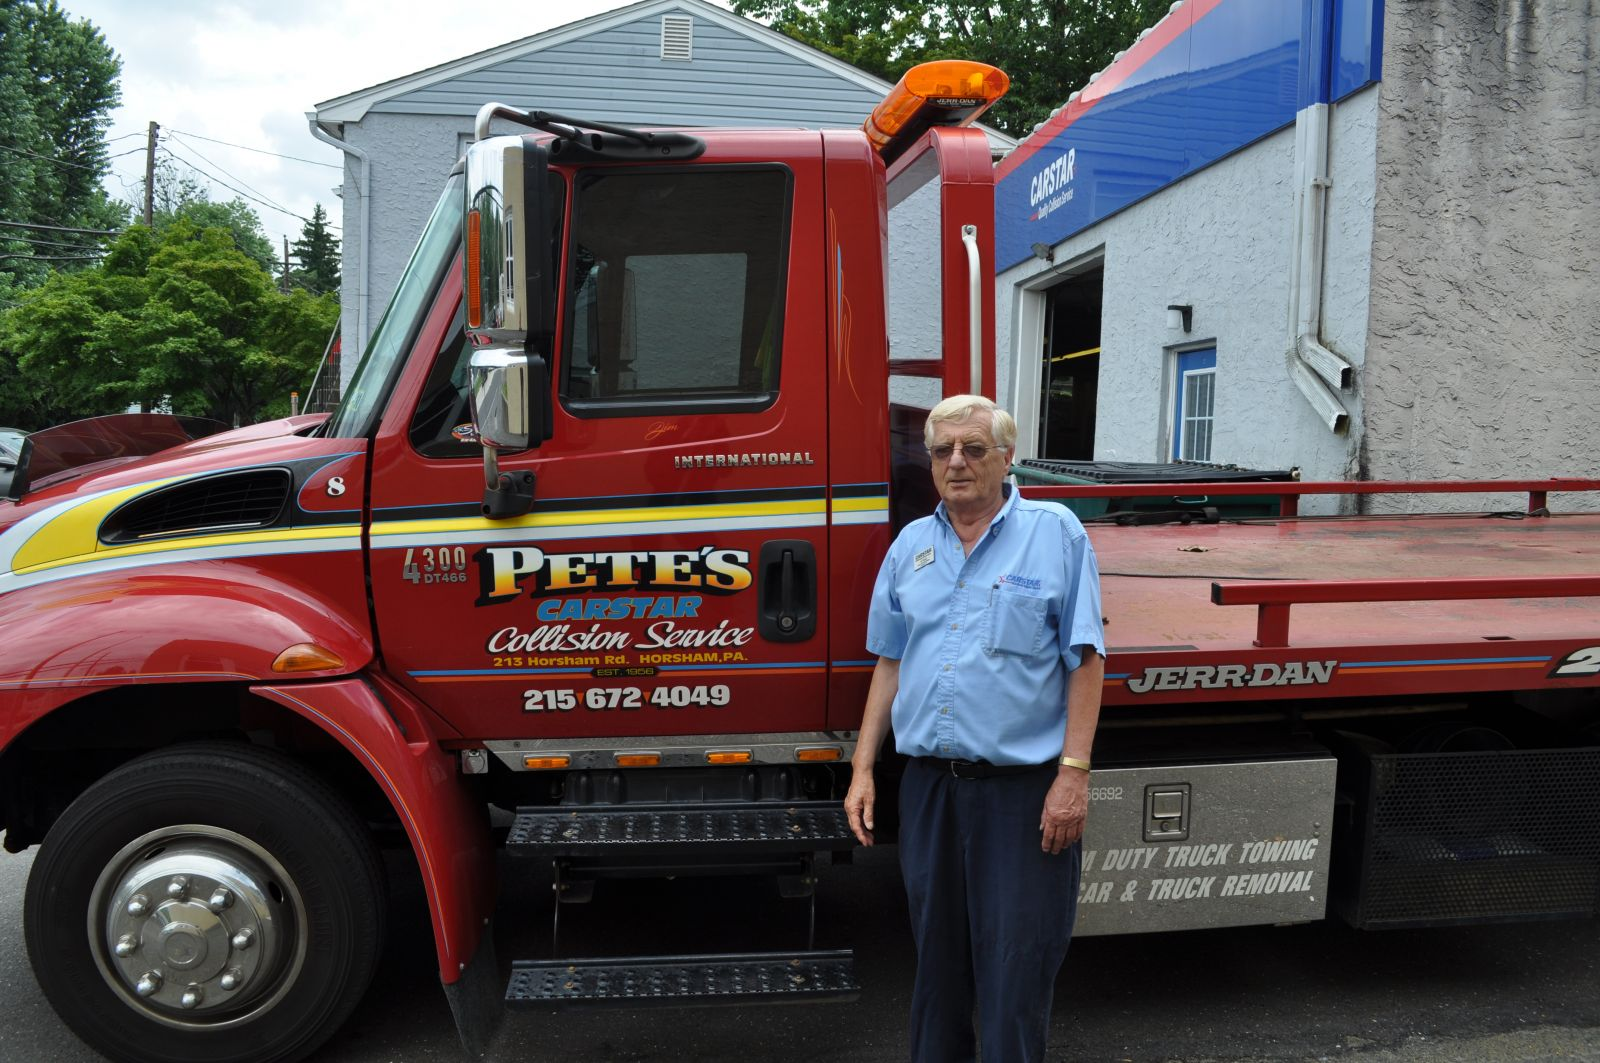 Pete's CARSTAR Collision: Towing Service